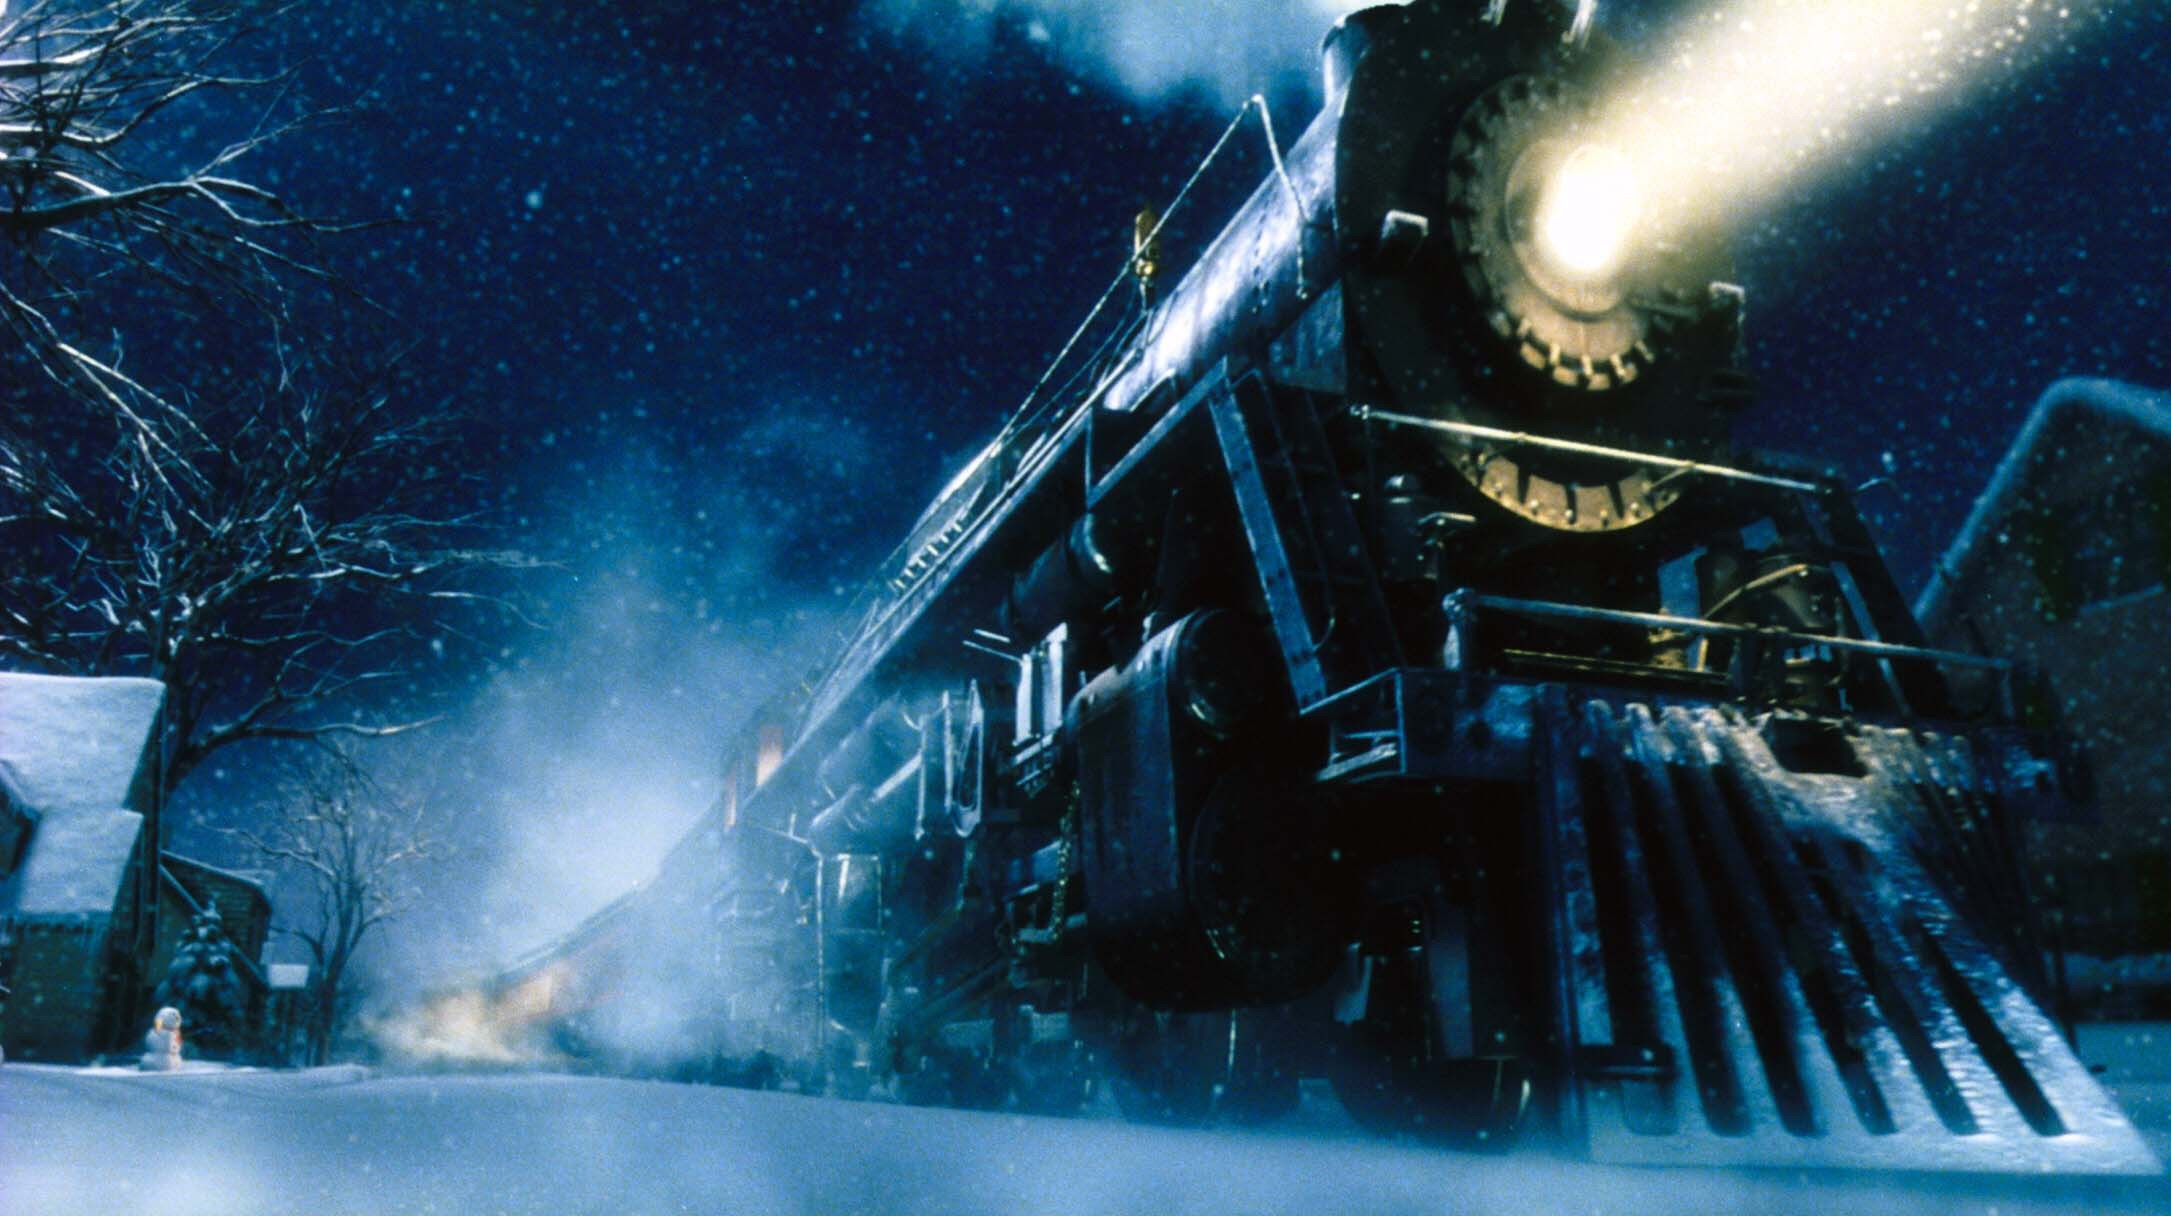 Polar express movie poster